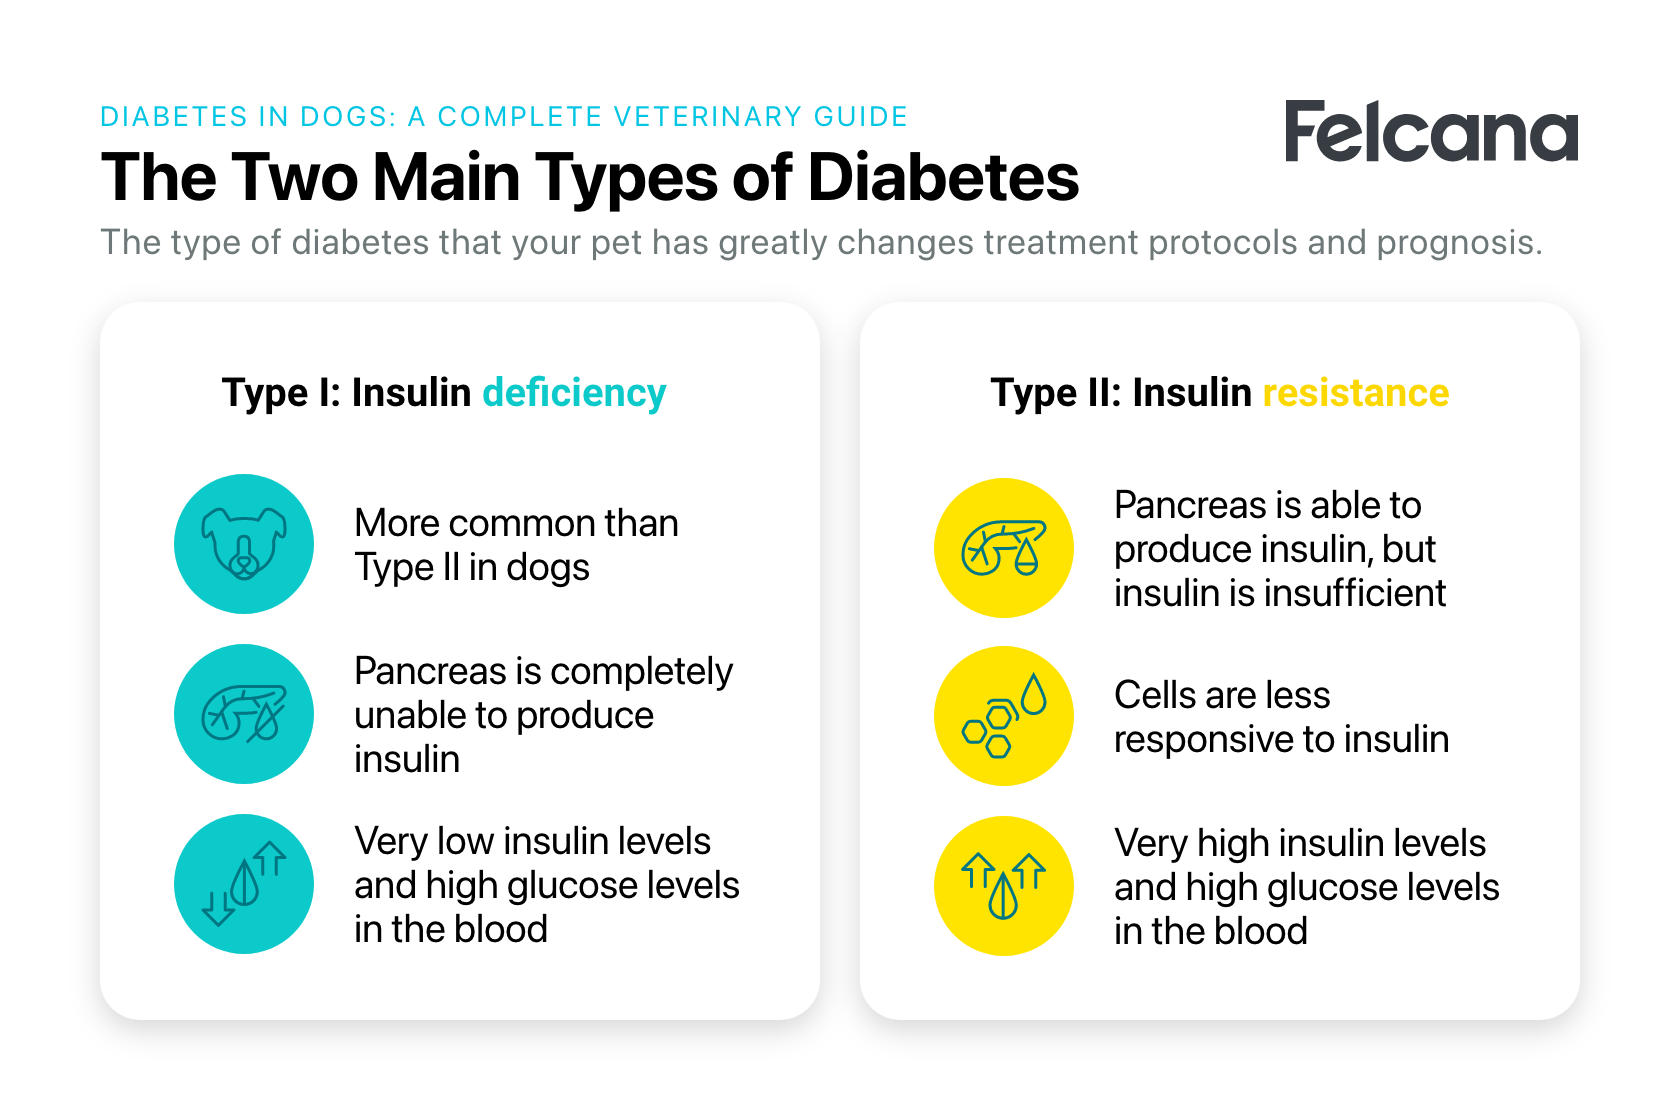 Comparison between type I and type II dog diabetes